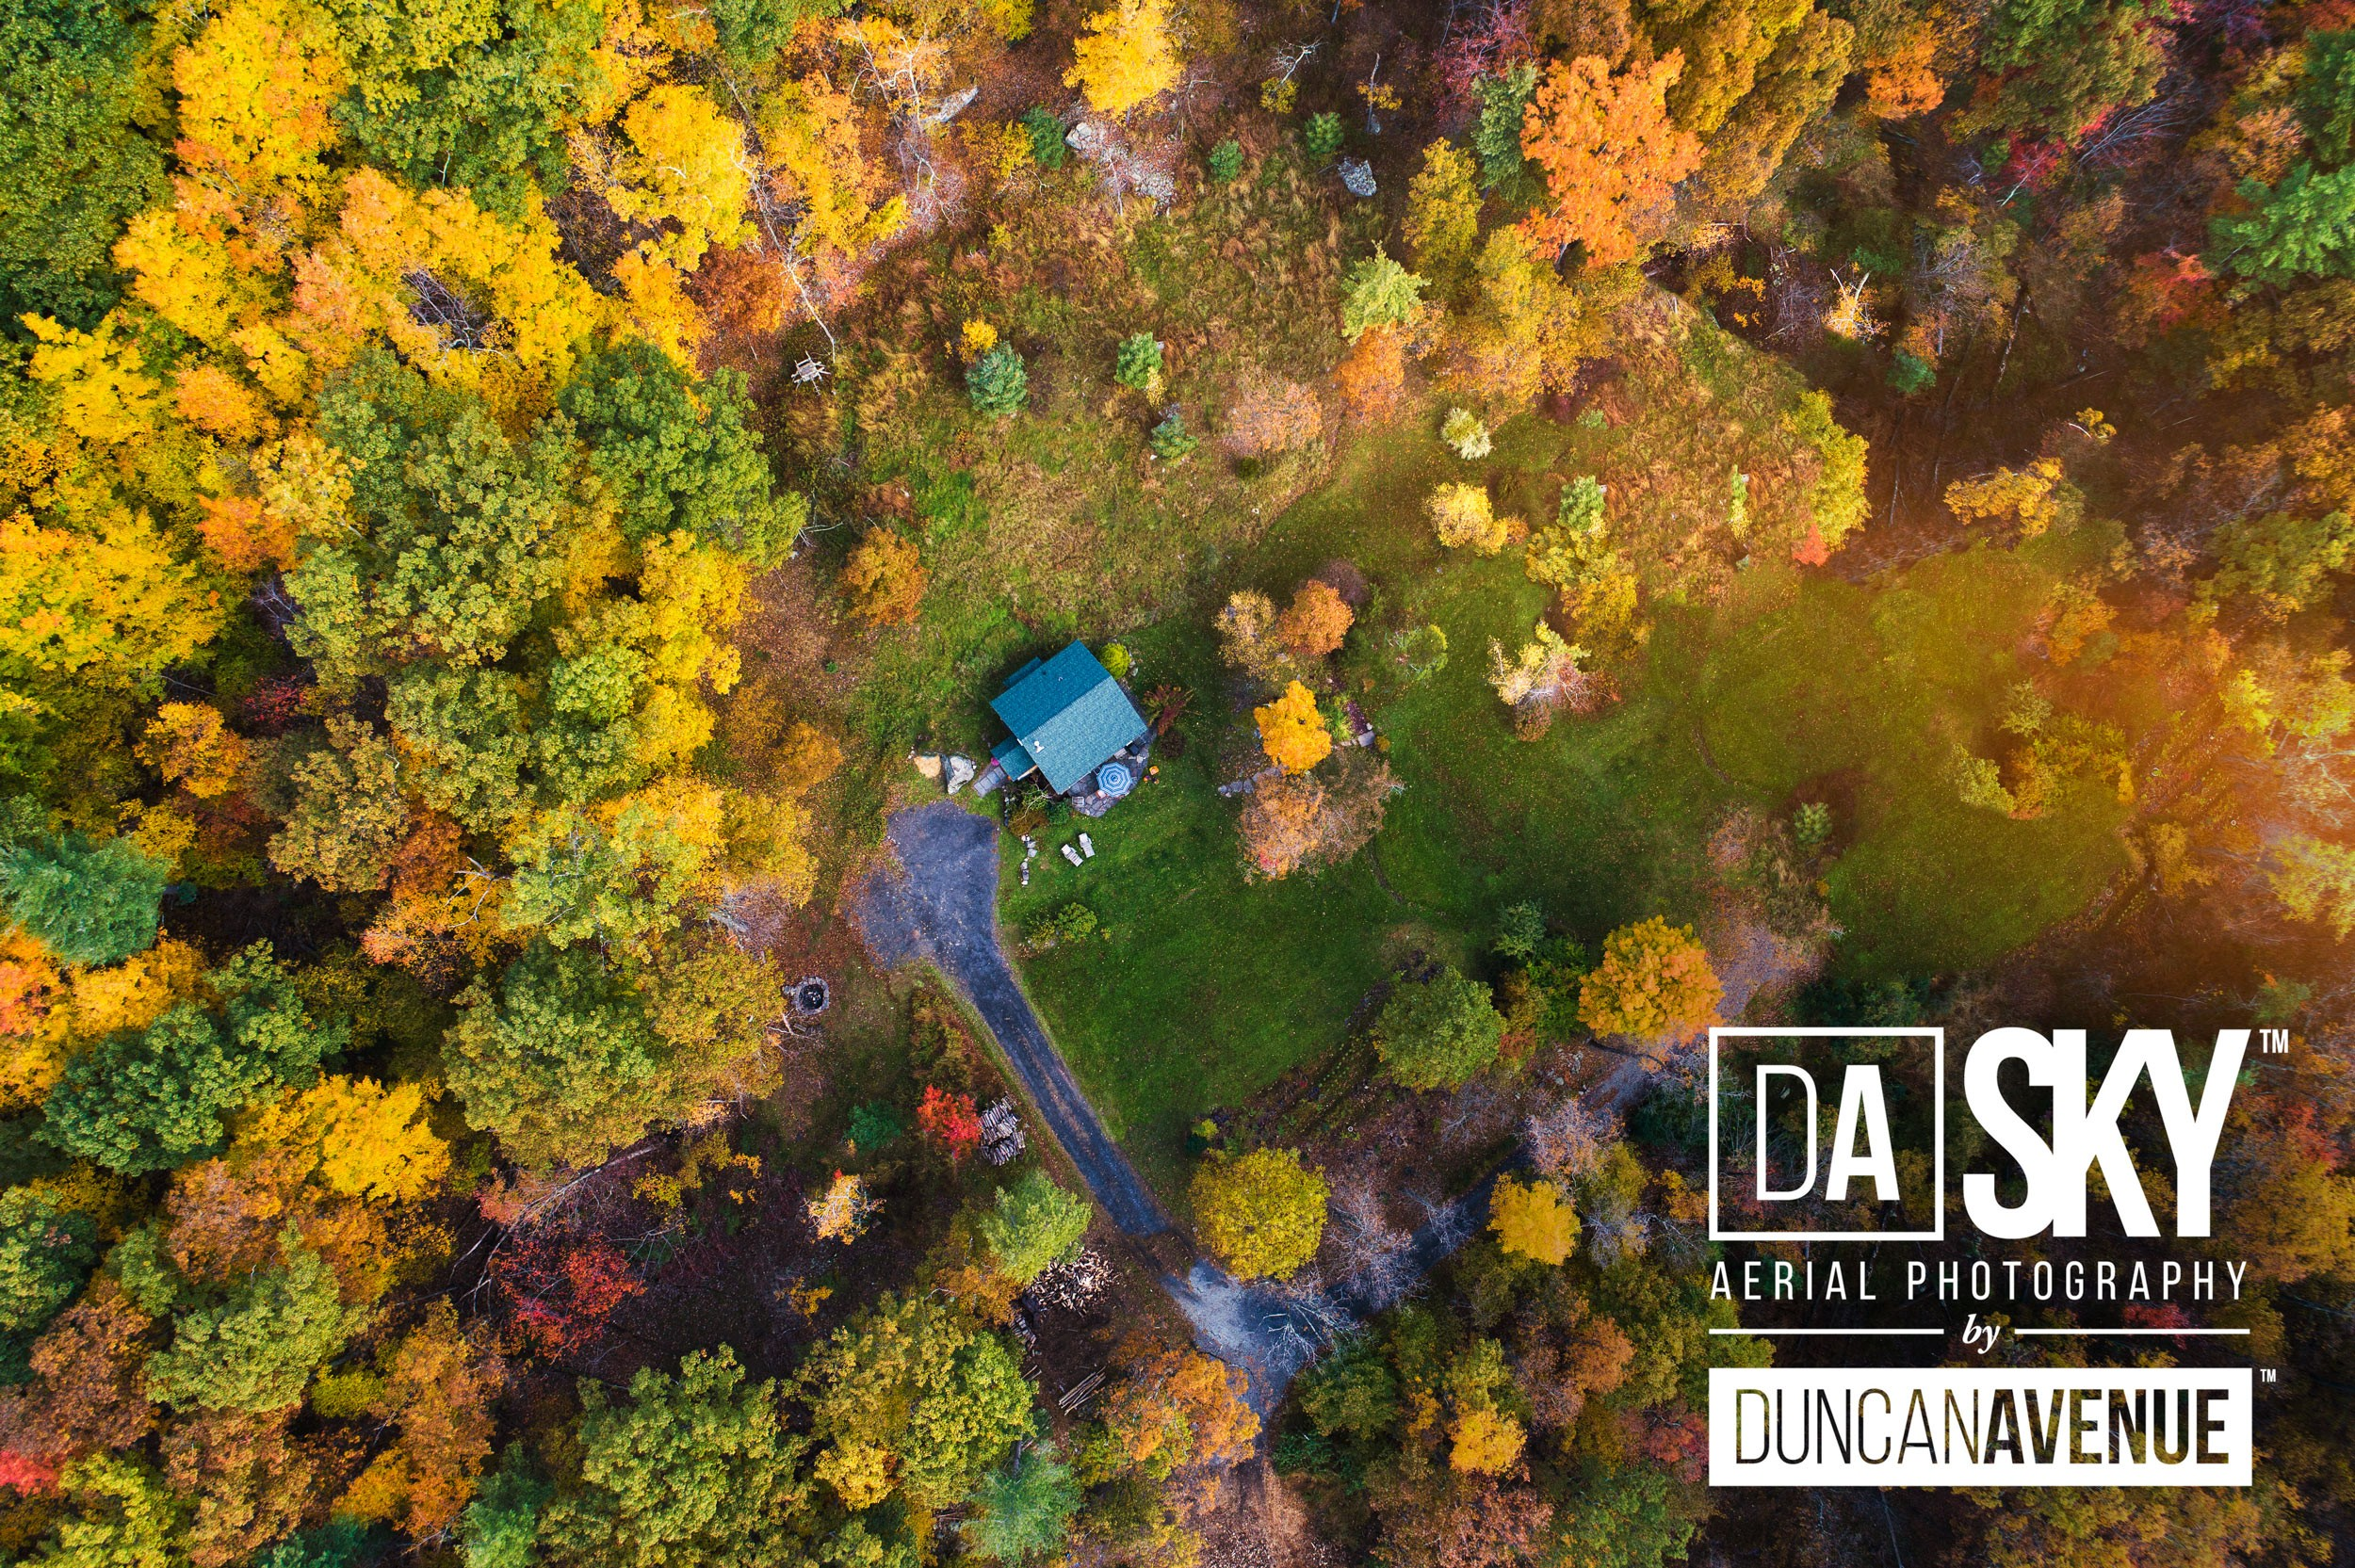 Fall in the Hudson Valley - Aerial Photography by DA SKY